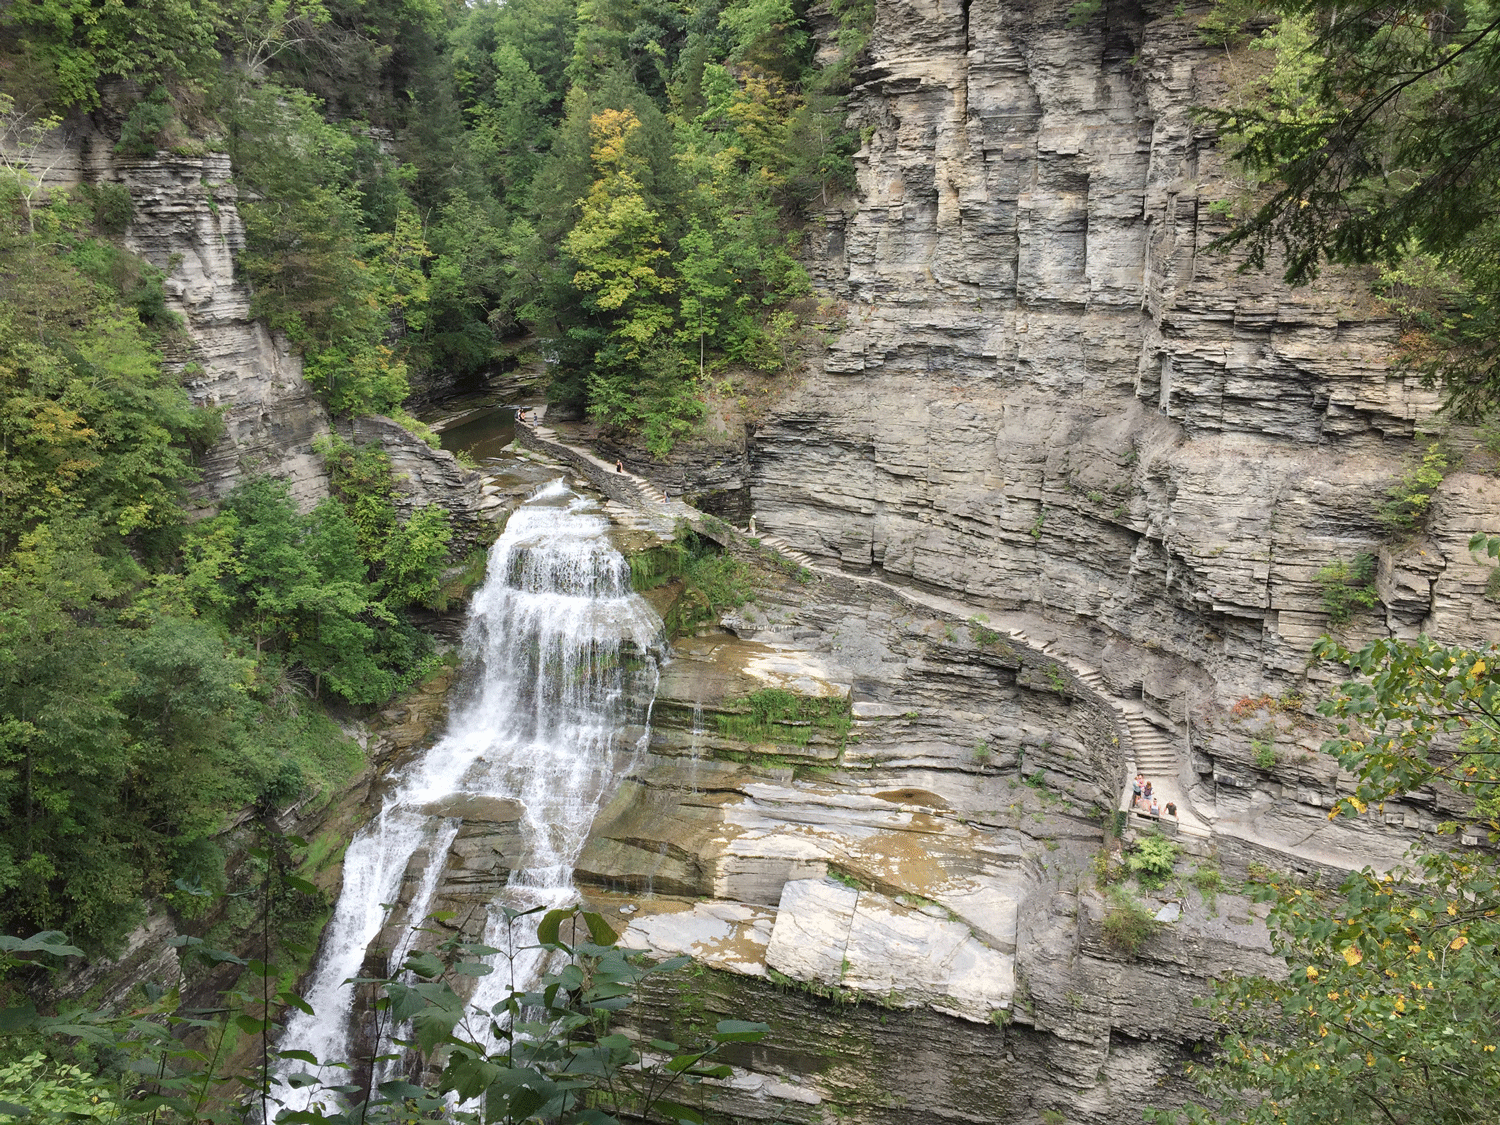 Lucifer Falls at Robert H. Treman State Park, Ithaca, New York (note people for scale). The sequence of rocks shown in this photograph (Devonian Sonyea Group) may represent about 1,000,000 years of geological time.